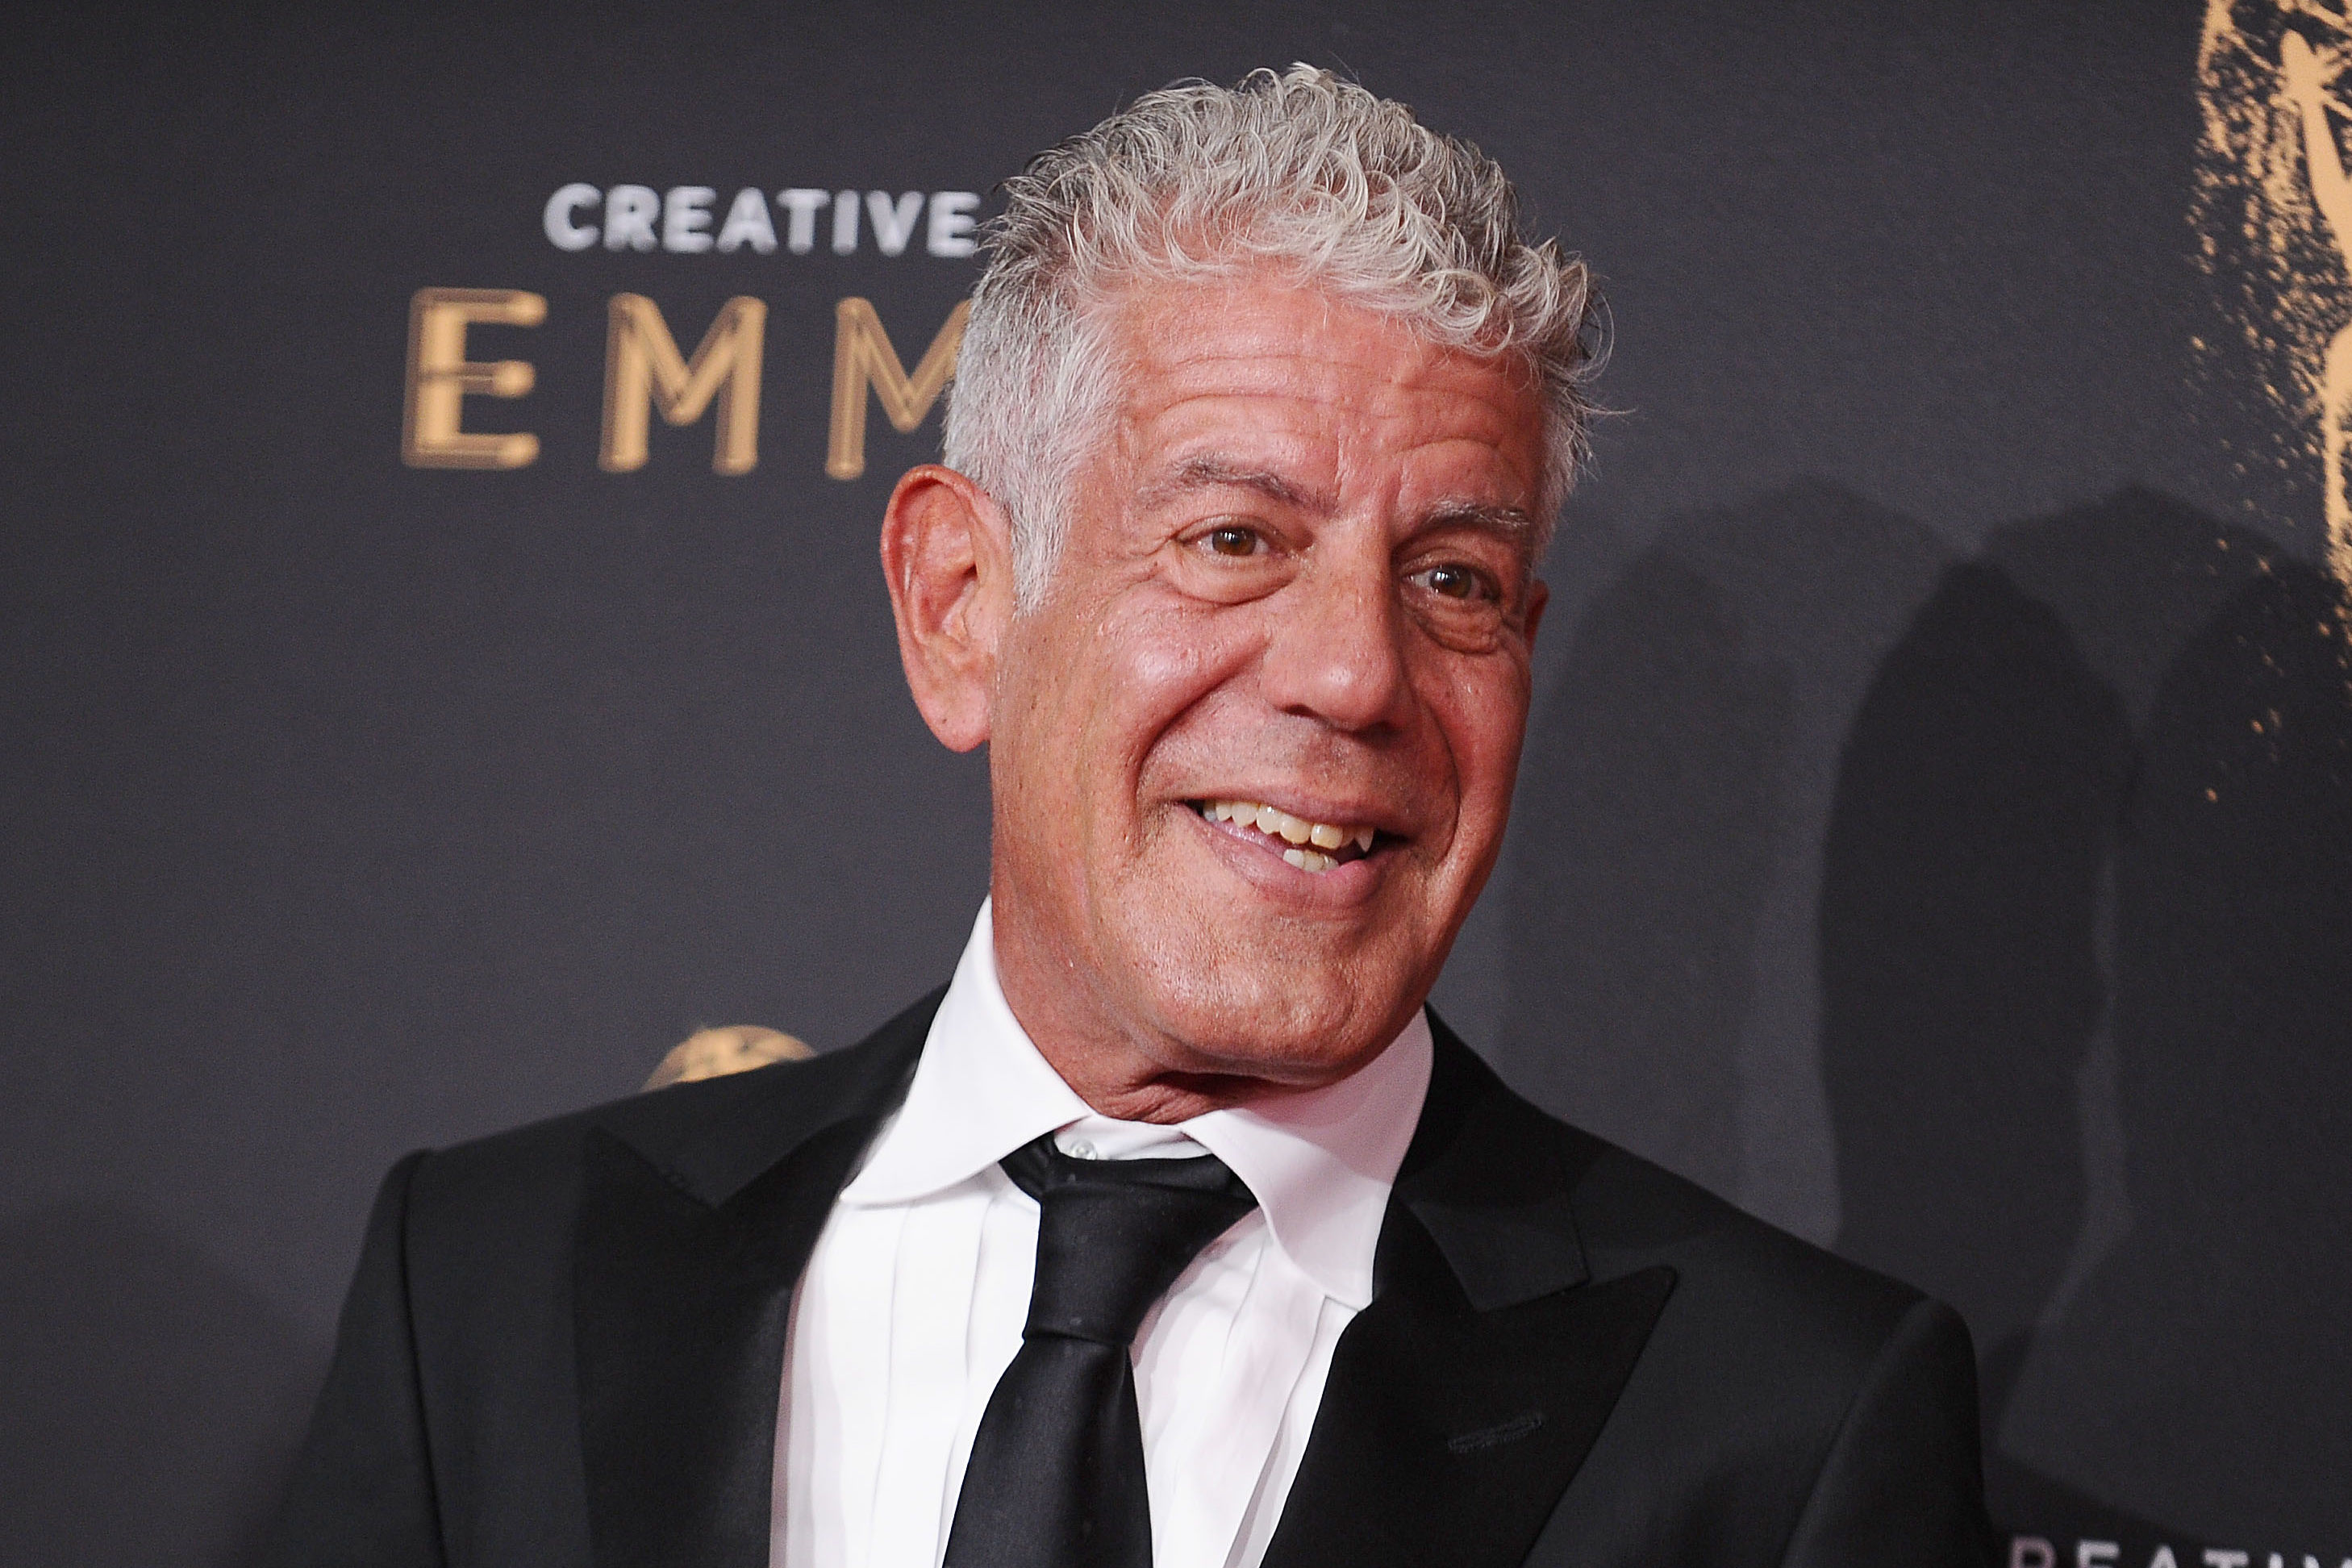 This Southern University Is Teaching an Anthony Bourdain Course Next Spring